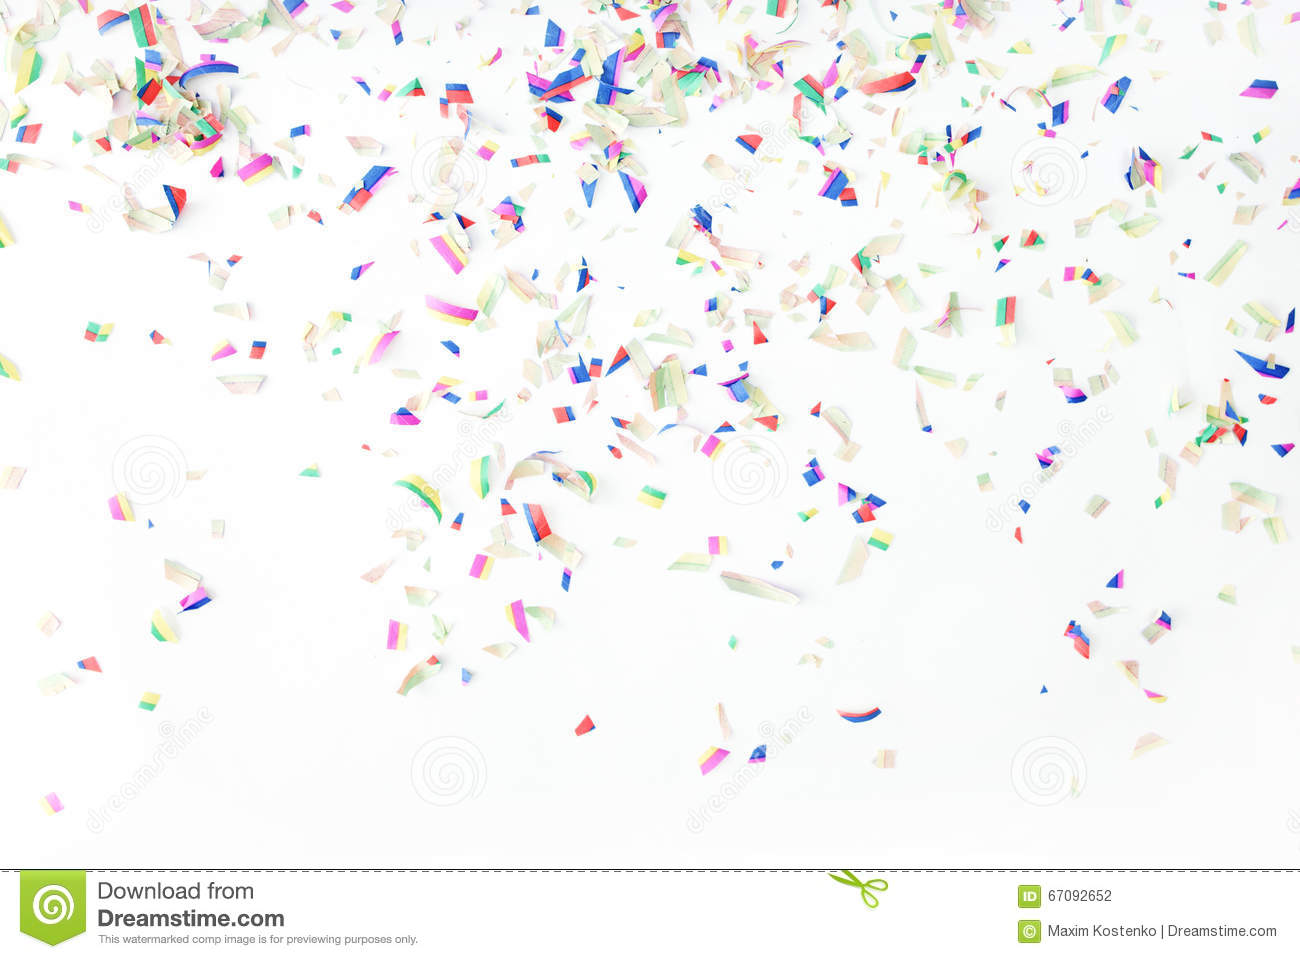 colorful confetti on white background holiday or party background colorful confetti on white background holiday or party background